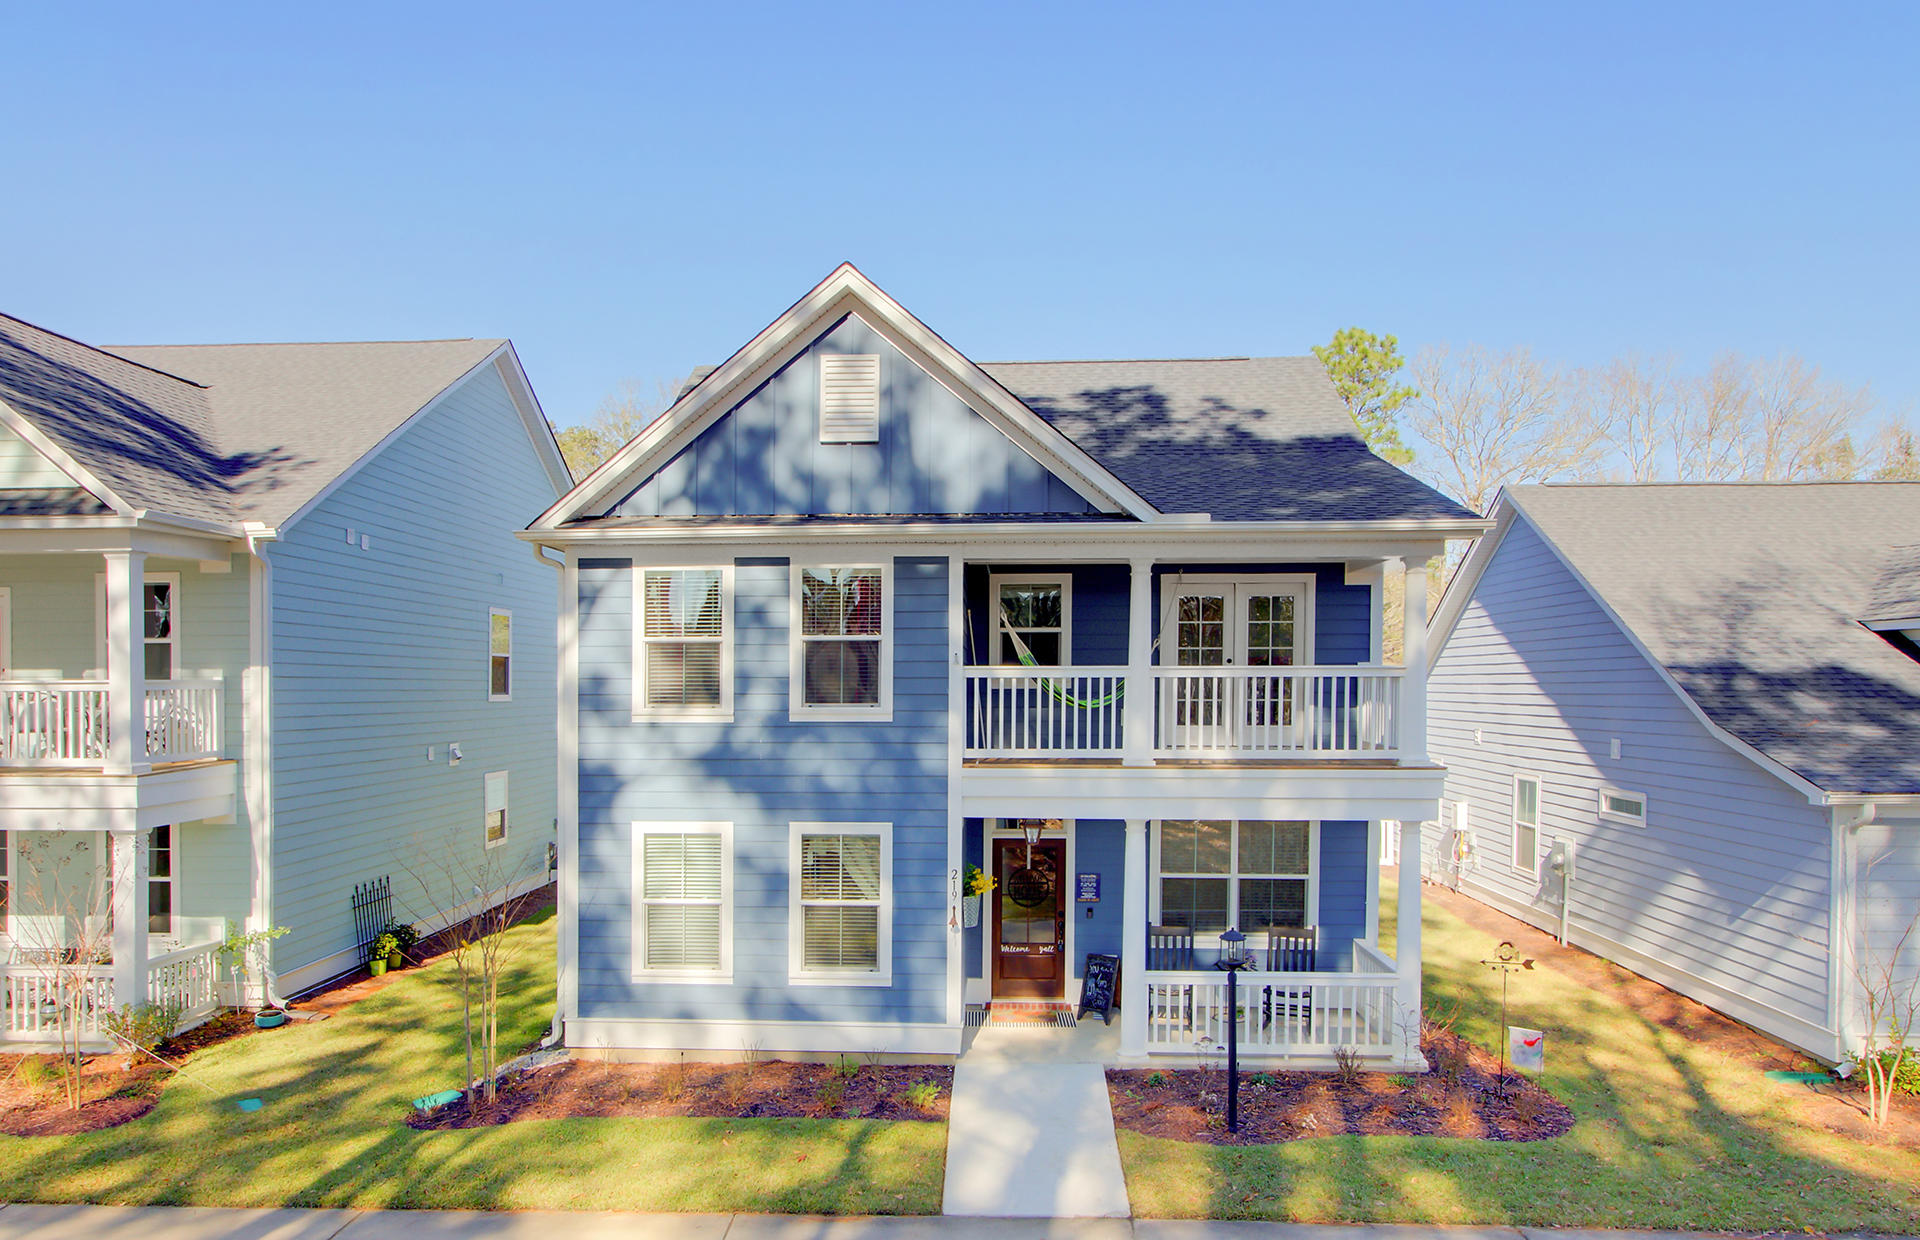 219 Blue Bonnet Street Summerville, SC 29483